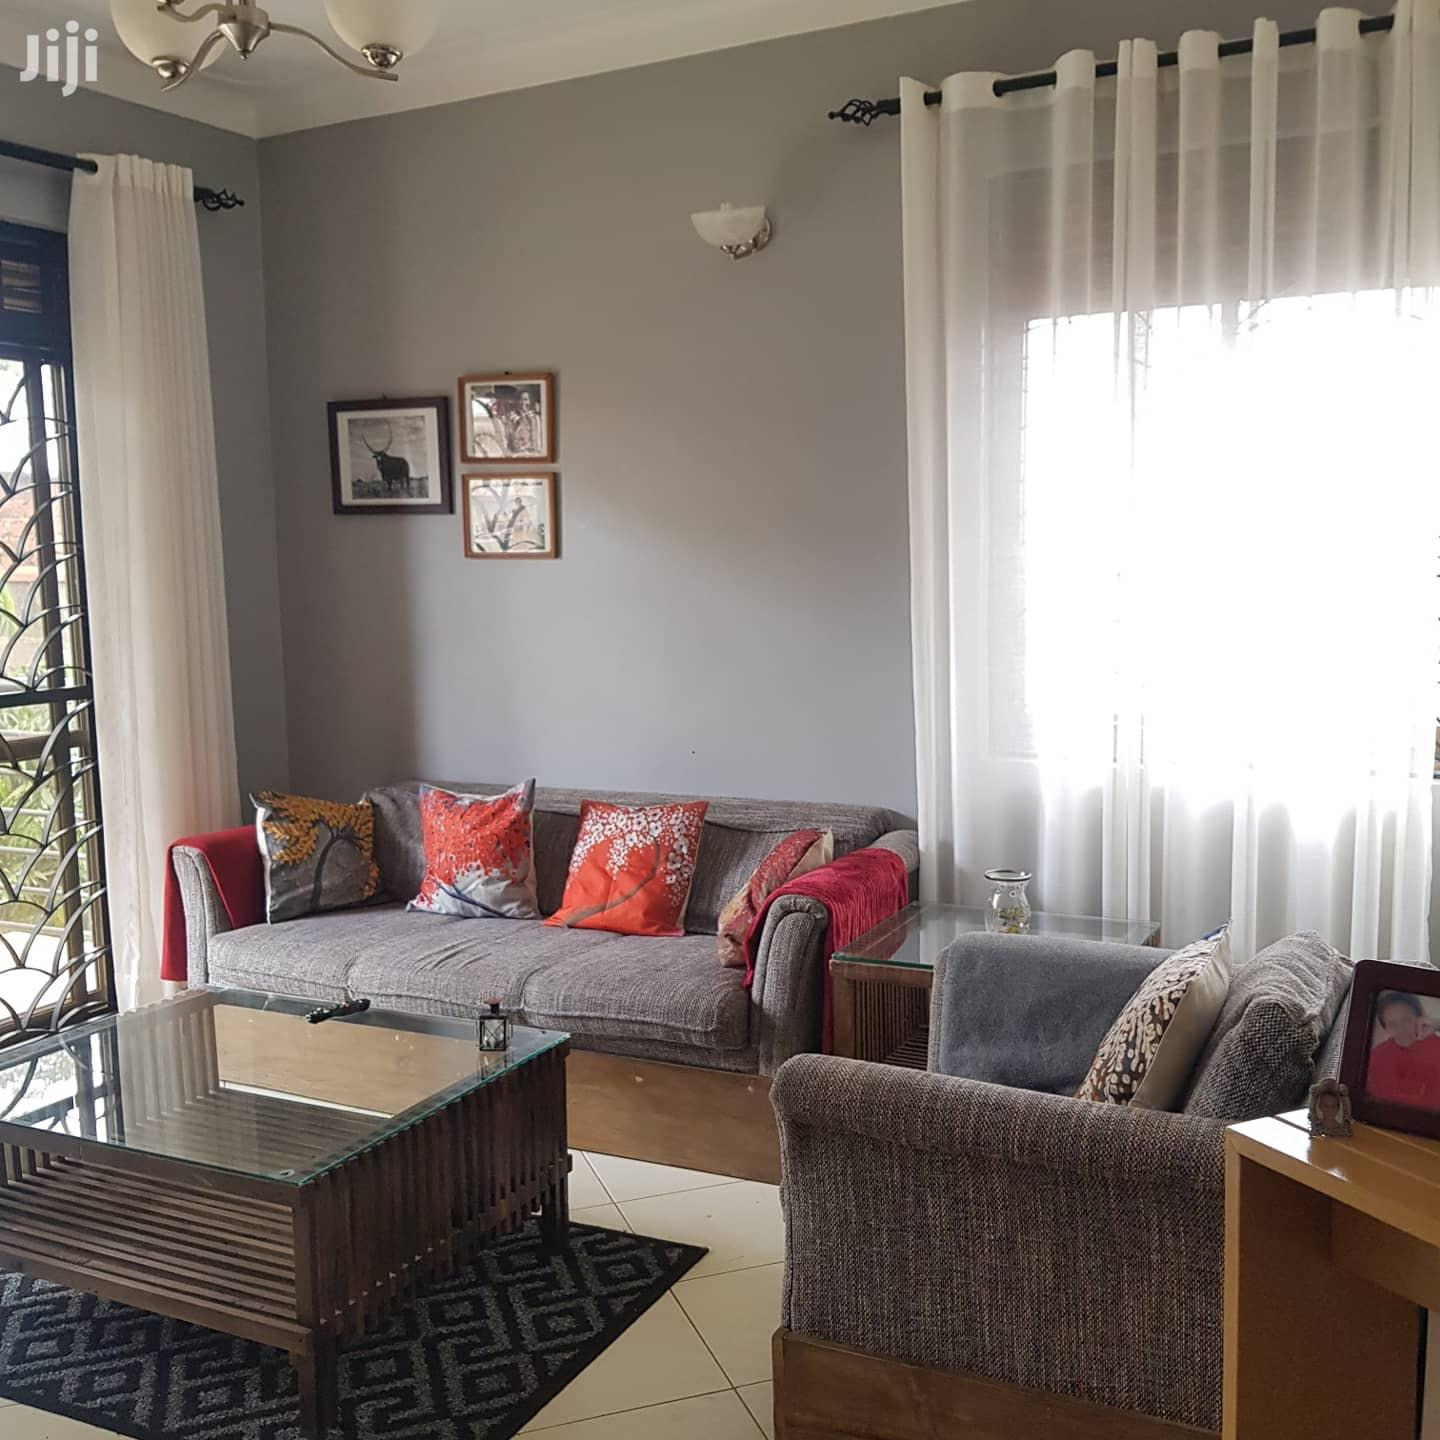 Furnished Apartment In Kyanja For Rent.